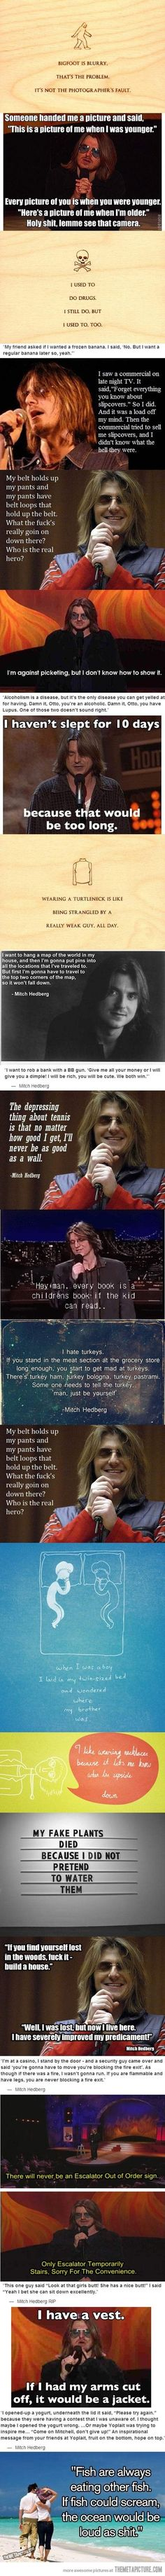 Mitch Hedberg Comedy Quotes